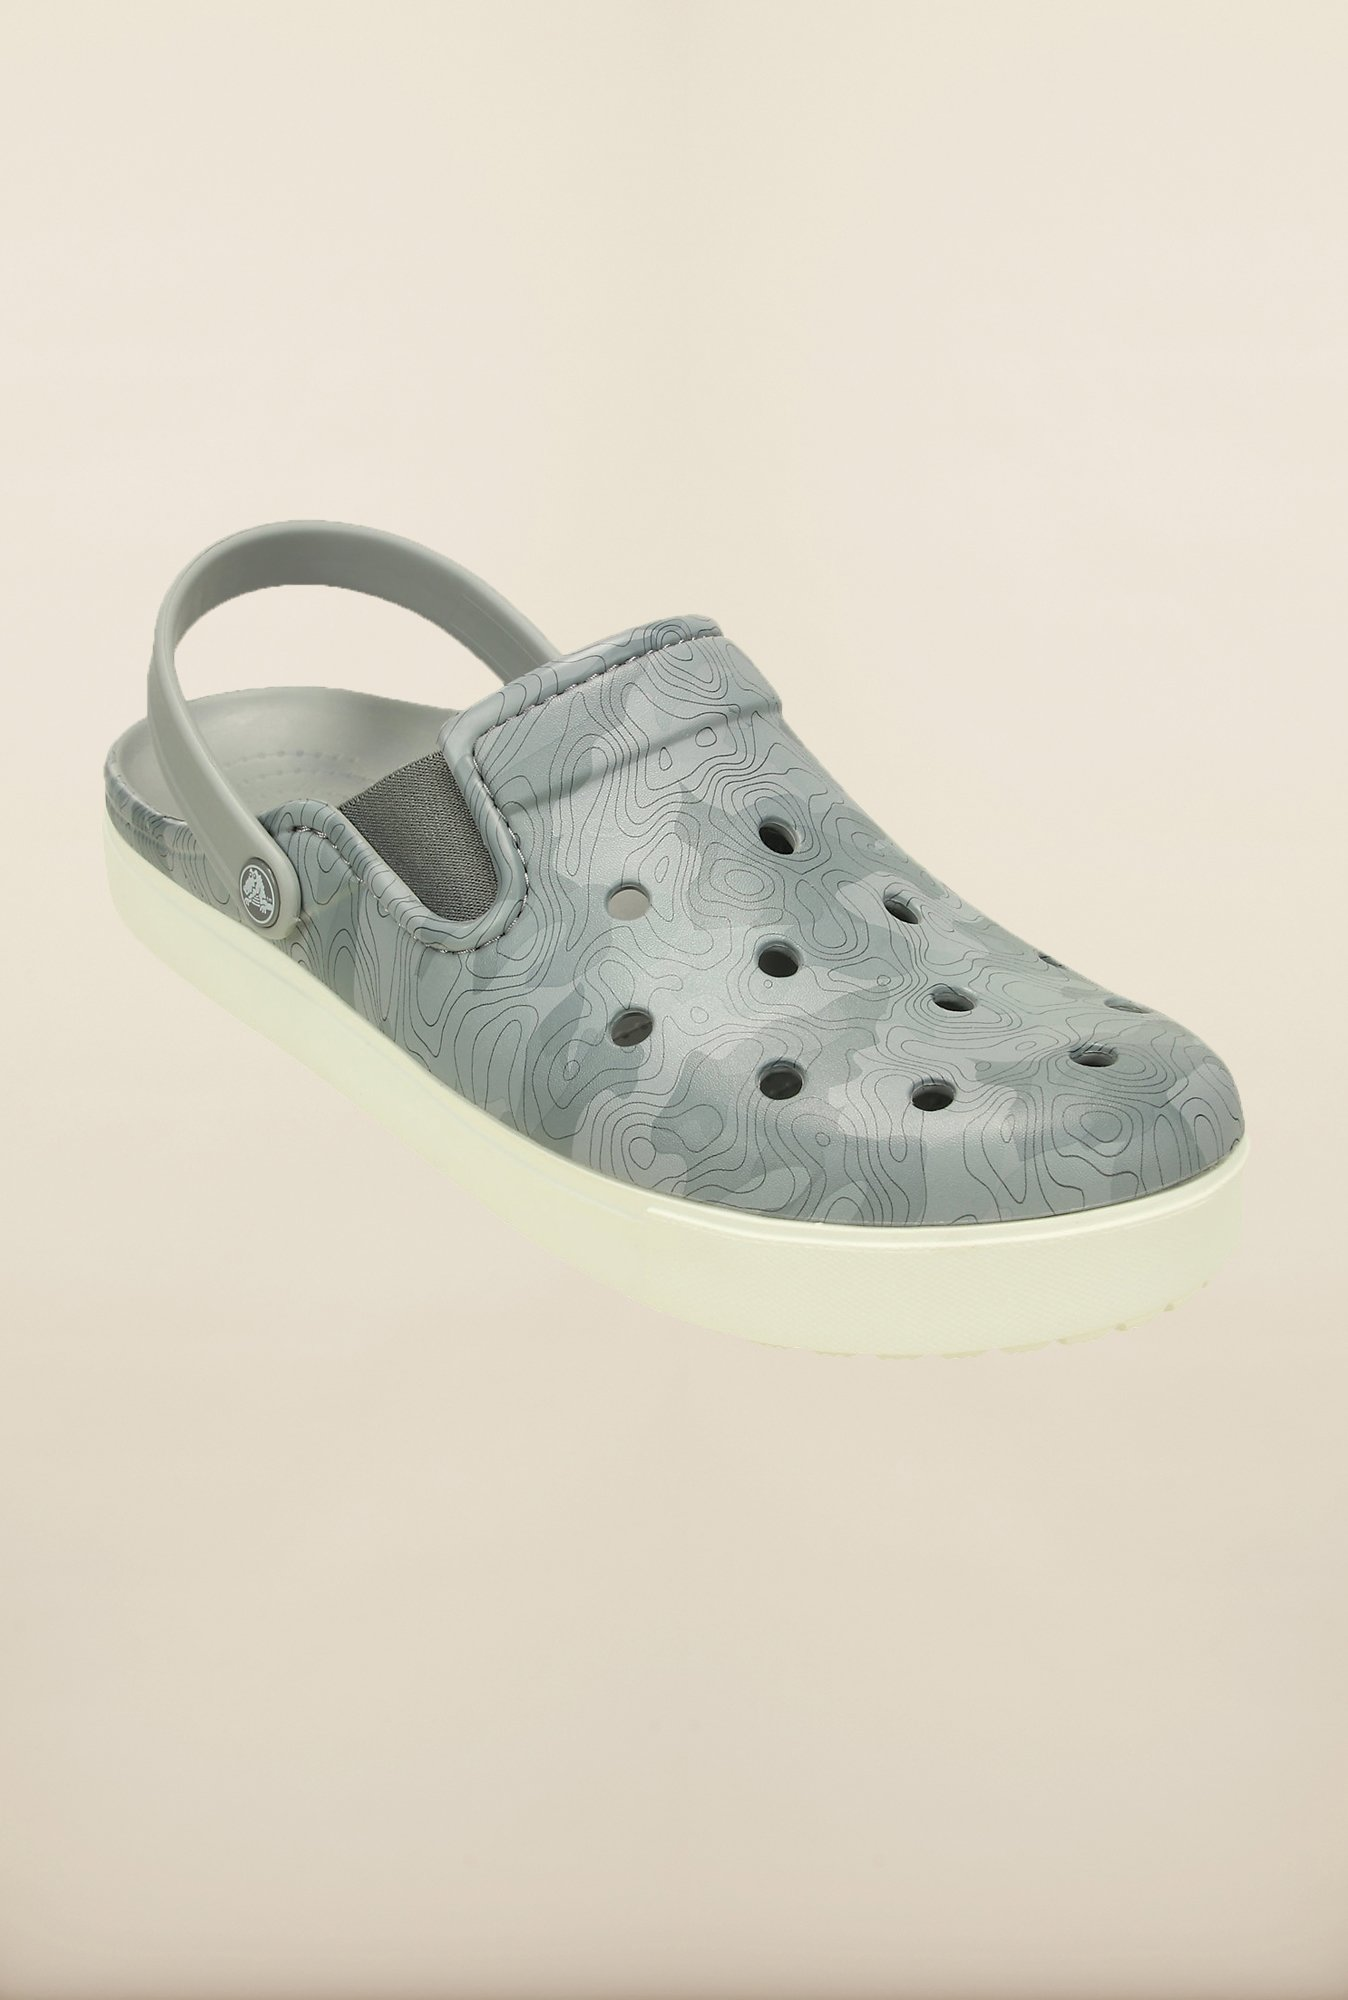 Crocs CitiLane Topographical Light Grey & White Clogs